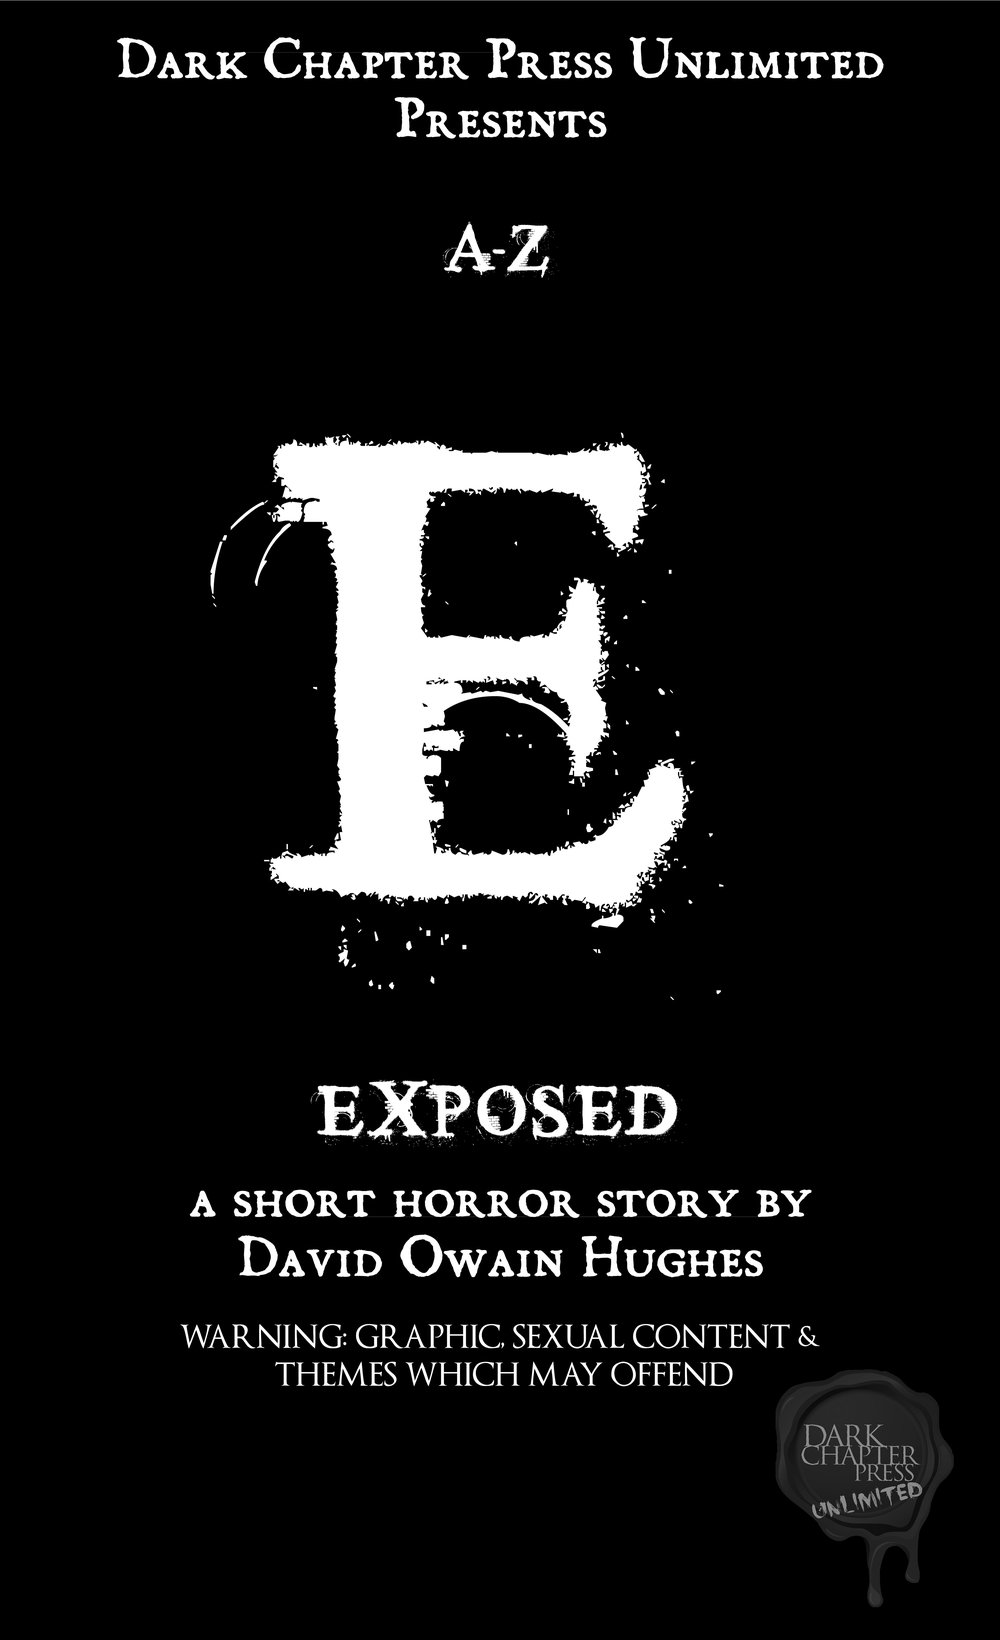 Exposed, by David Owain Hughes Kenny considers himself many things; a family man, a husband, a father. And a voyeur.  However, he doesn't have control over his urges, a perversion that once threatened to destroy his life.  And when he revisits the obsession in a moment of weakness, he discovers it could change his life once and for all.